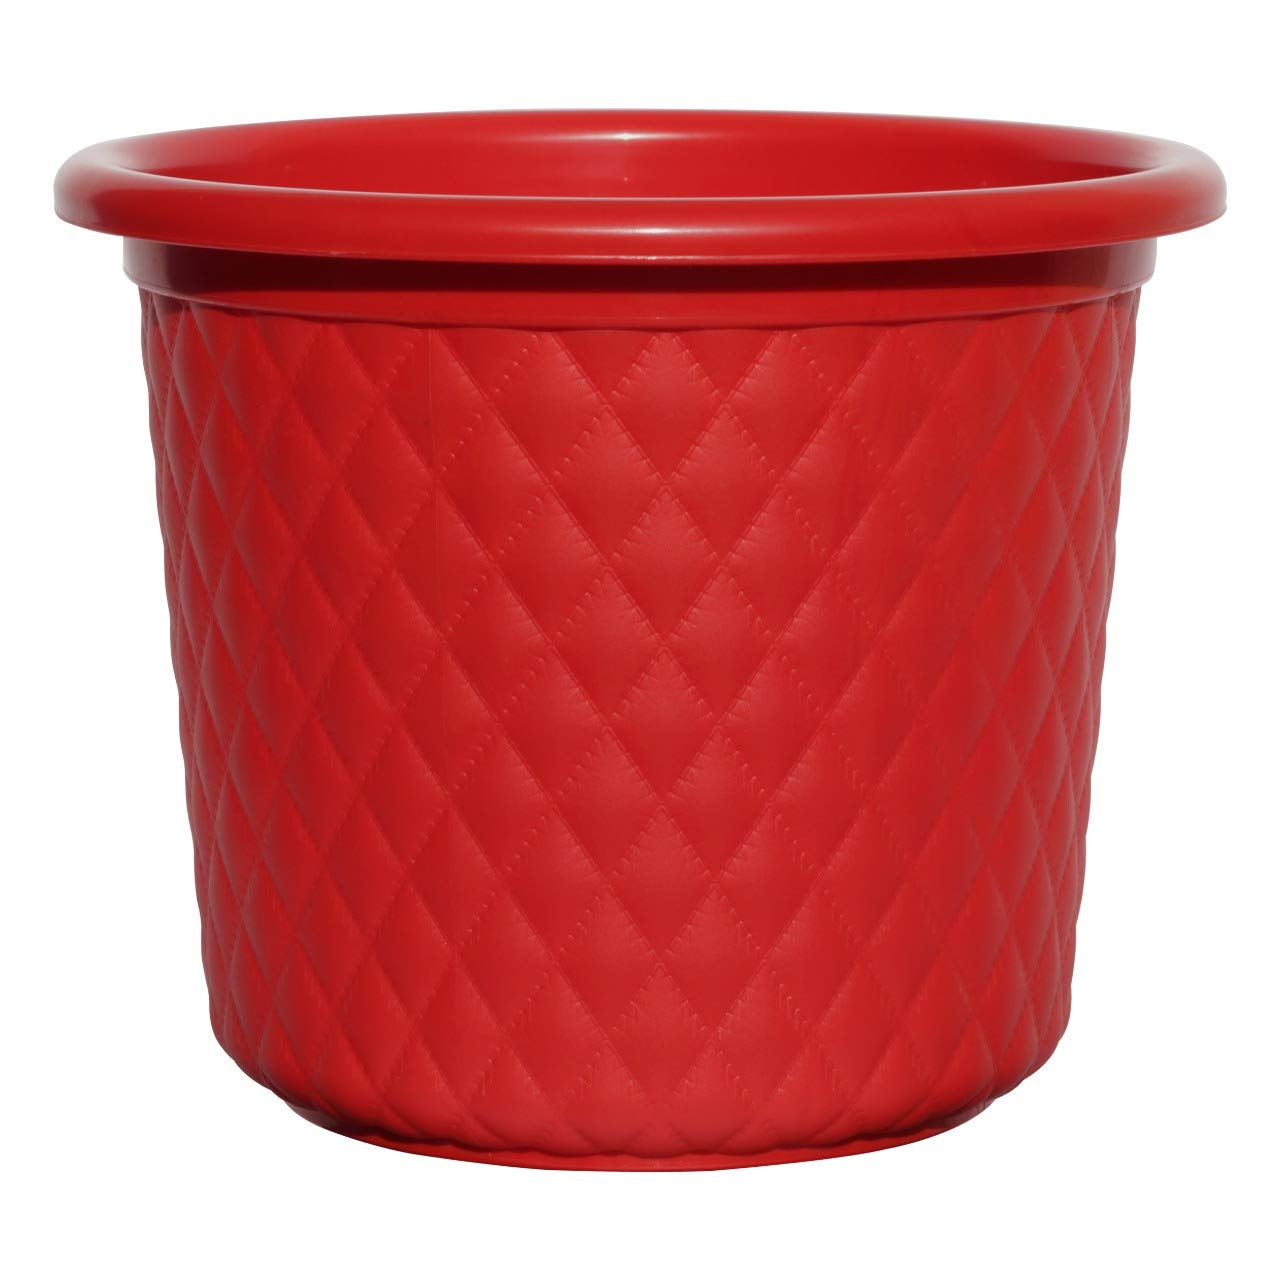 Amazon price history for AASHU Heavy Duty Leather Finish Plastic Planter Pots Planters Indoor Planters for Outdoor (Size -10.5''Dia,Height-9'' Colour -red)-Pack of 1